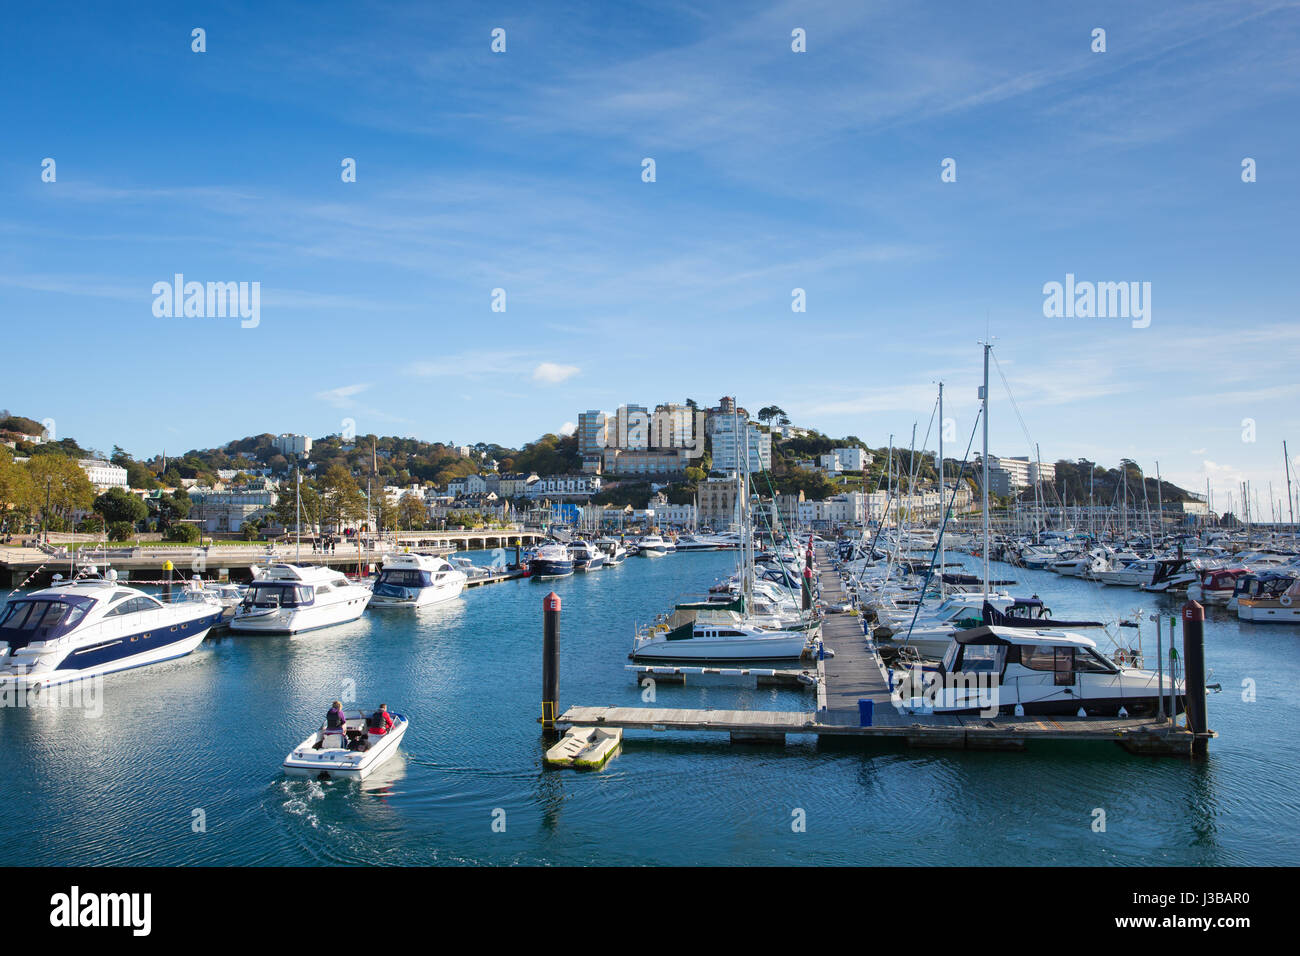 Torquay marina Devon UK with boats and yachts on beautiful day on the English Riviera - Stock Image